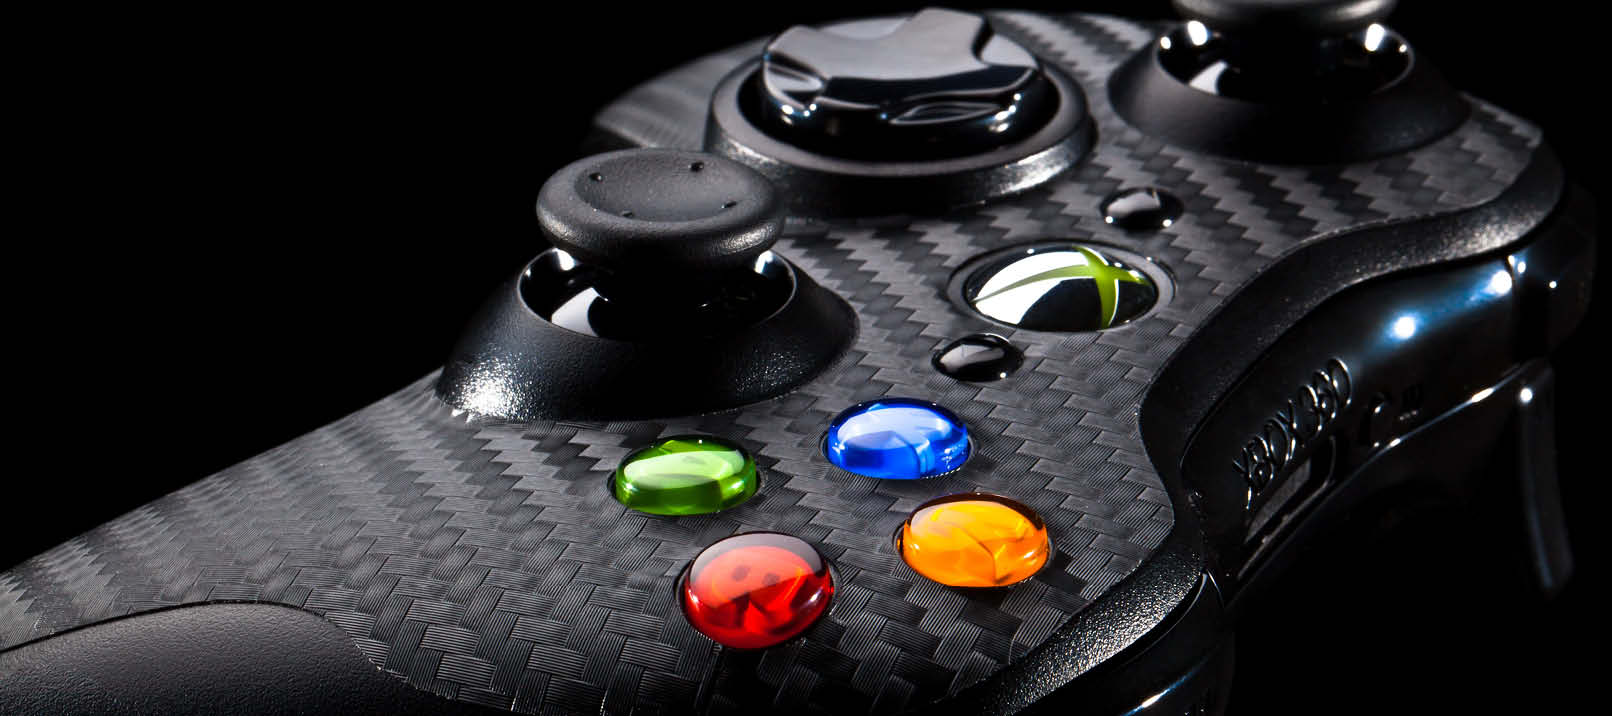 xbox360_controller_side_carbon_black